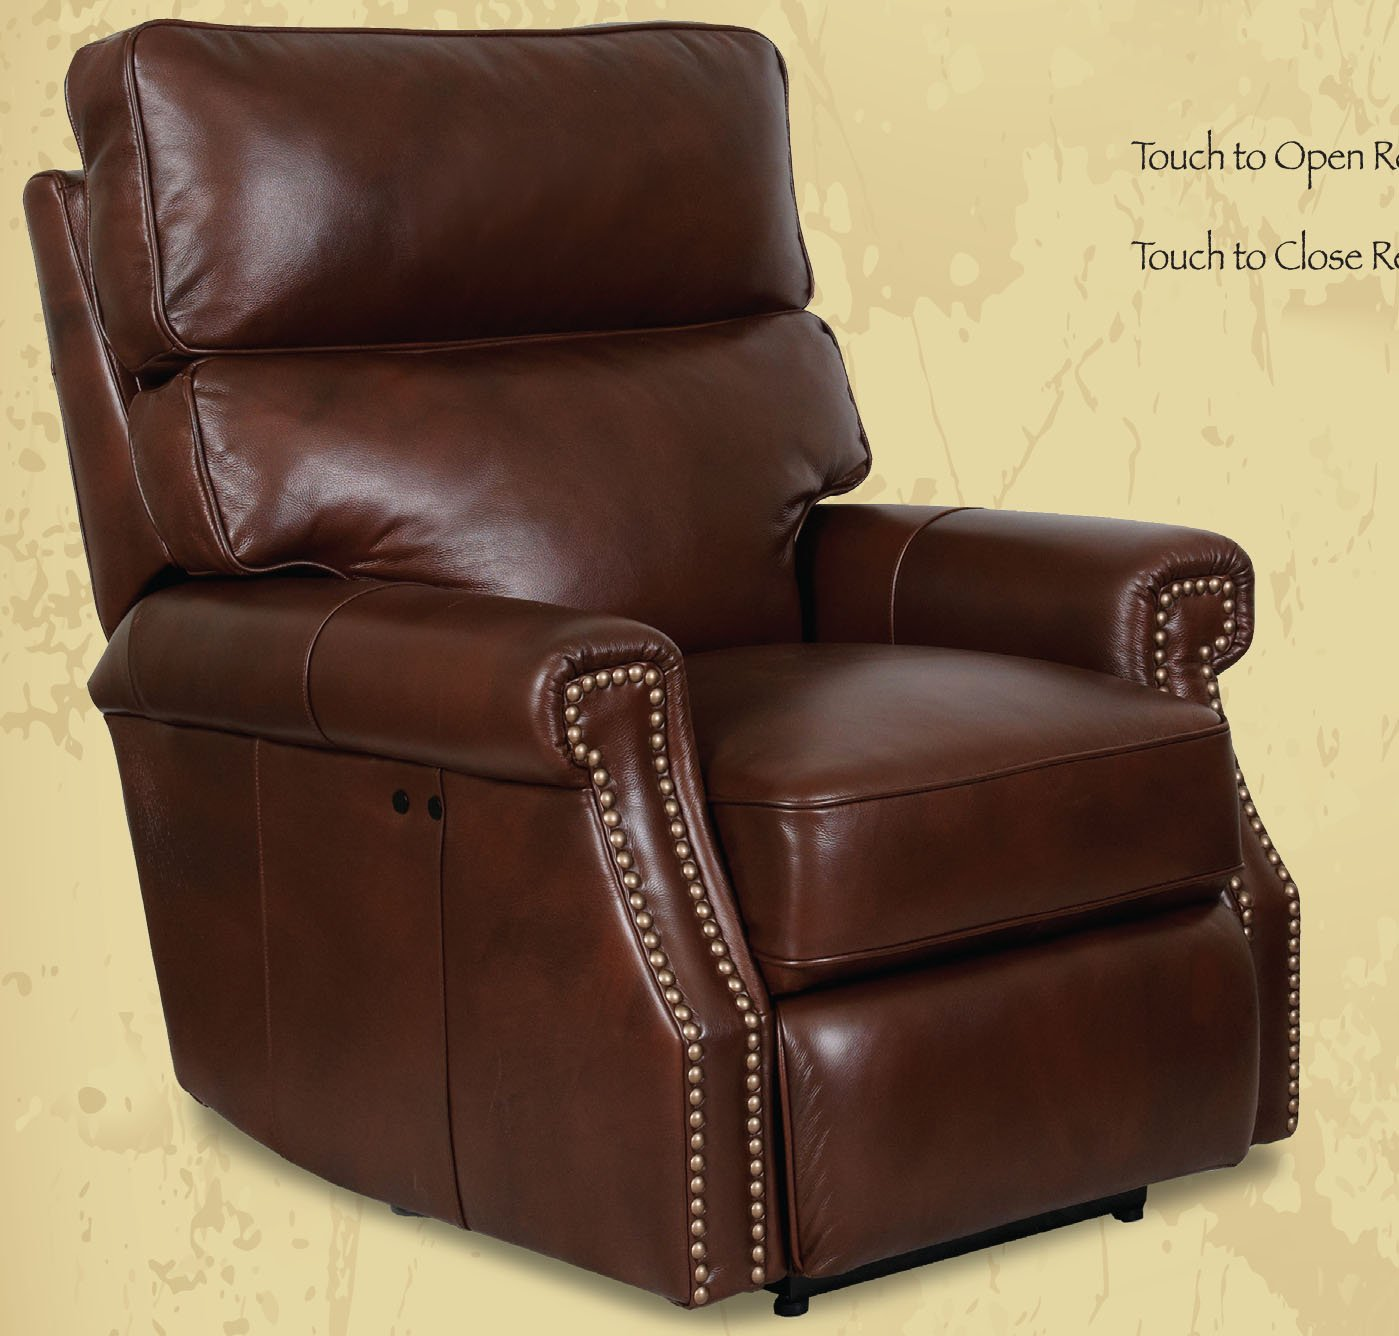 Amazon.com Barcalounger Power Electric Recline Lochmere II Recliner Lounger Chair Broughton Saddle Leather Kitchen u0026 Dining : barcalounger sectional - Sectionals, Sofas & Couches